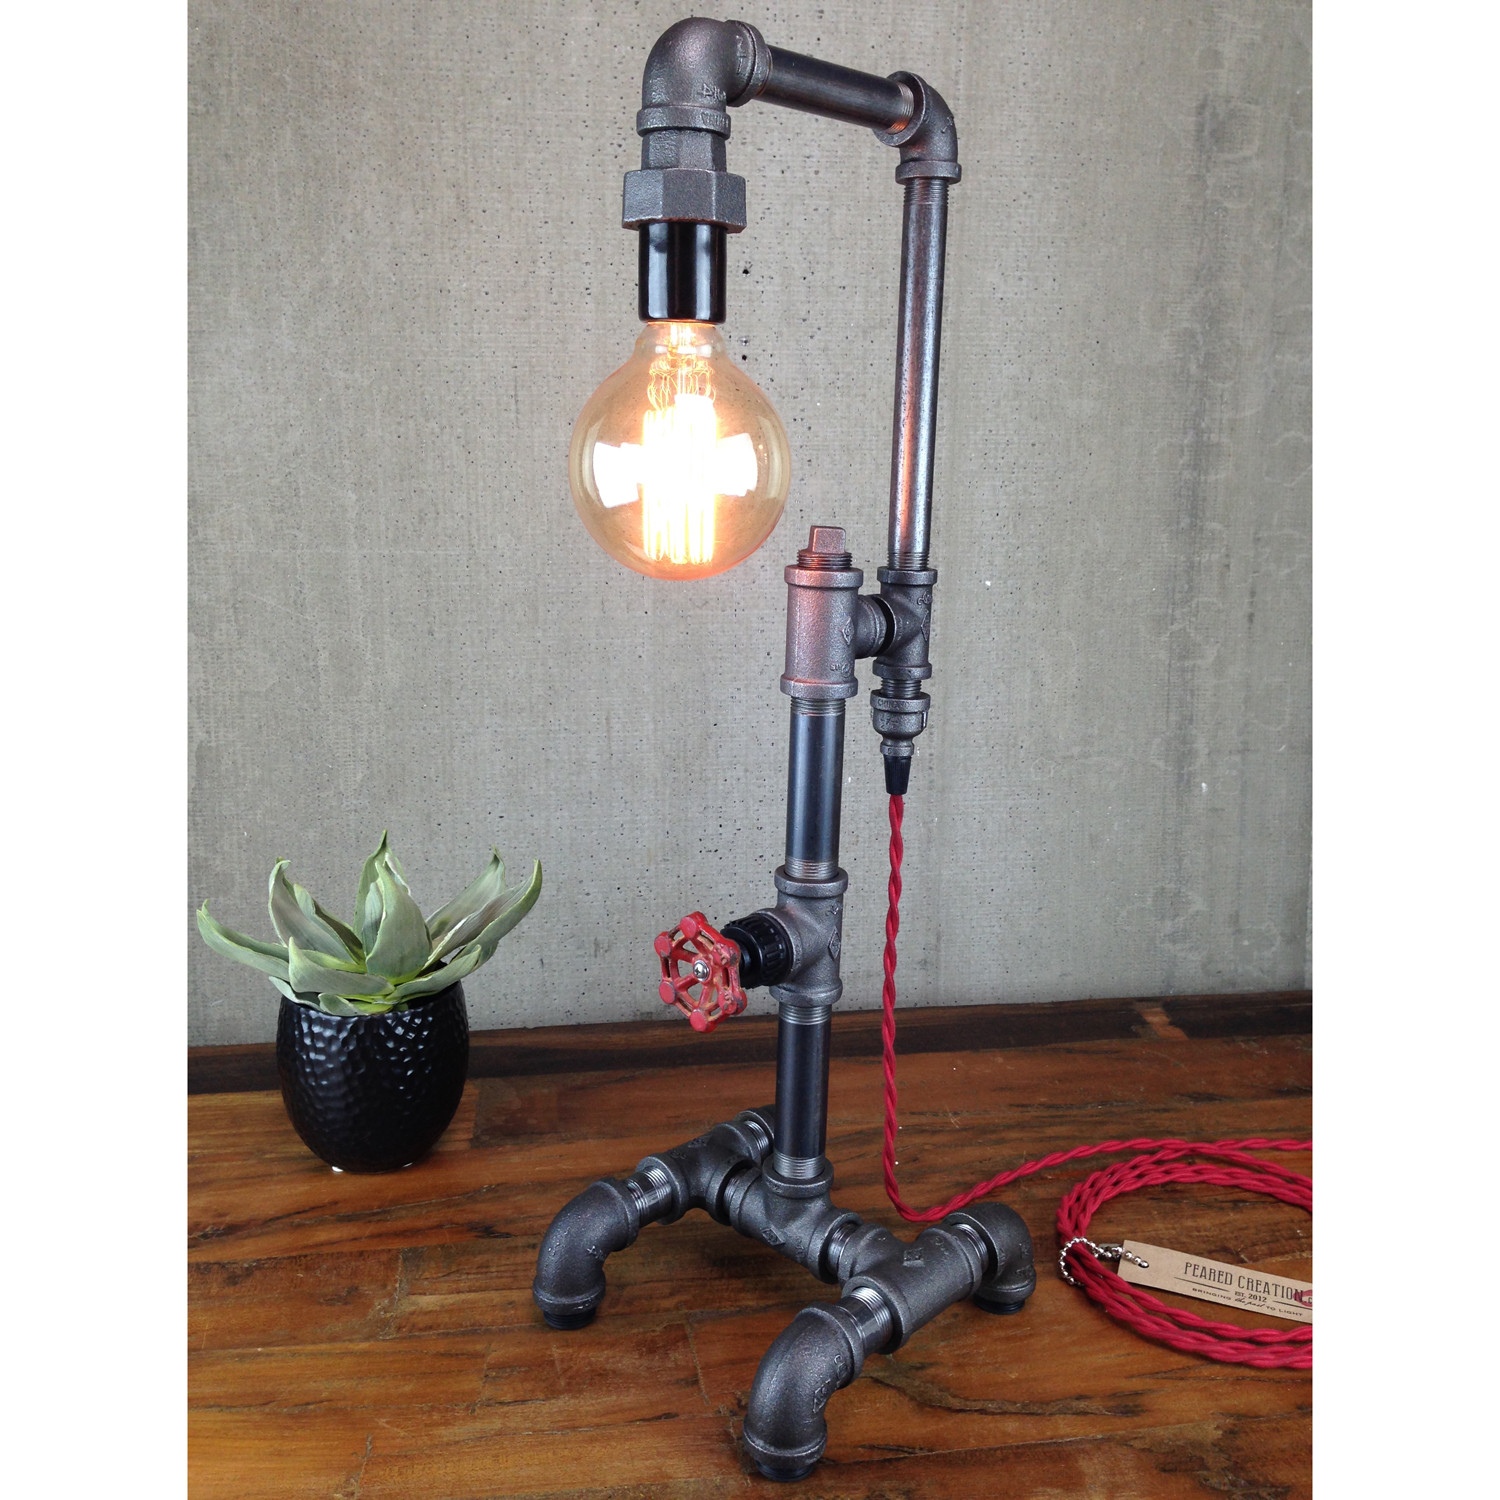 industrial style table lamp peared creation touch of modern. Black Bedroom Furniture Sets. Home Design Ideas